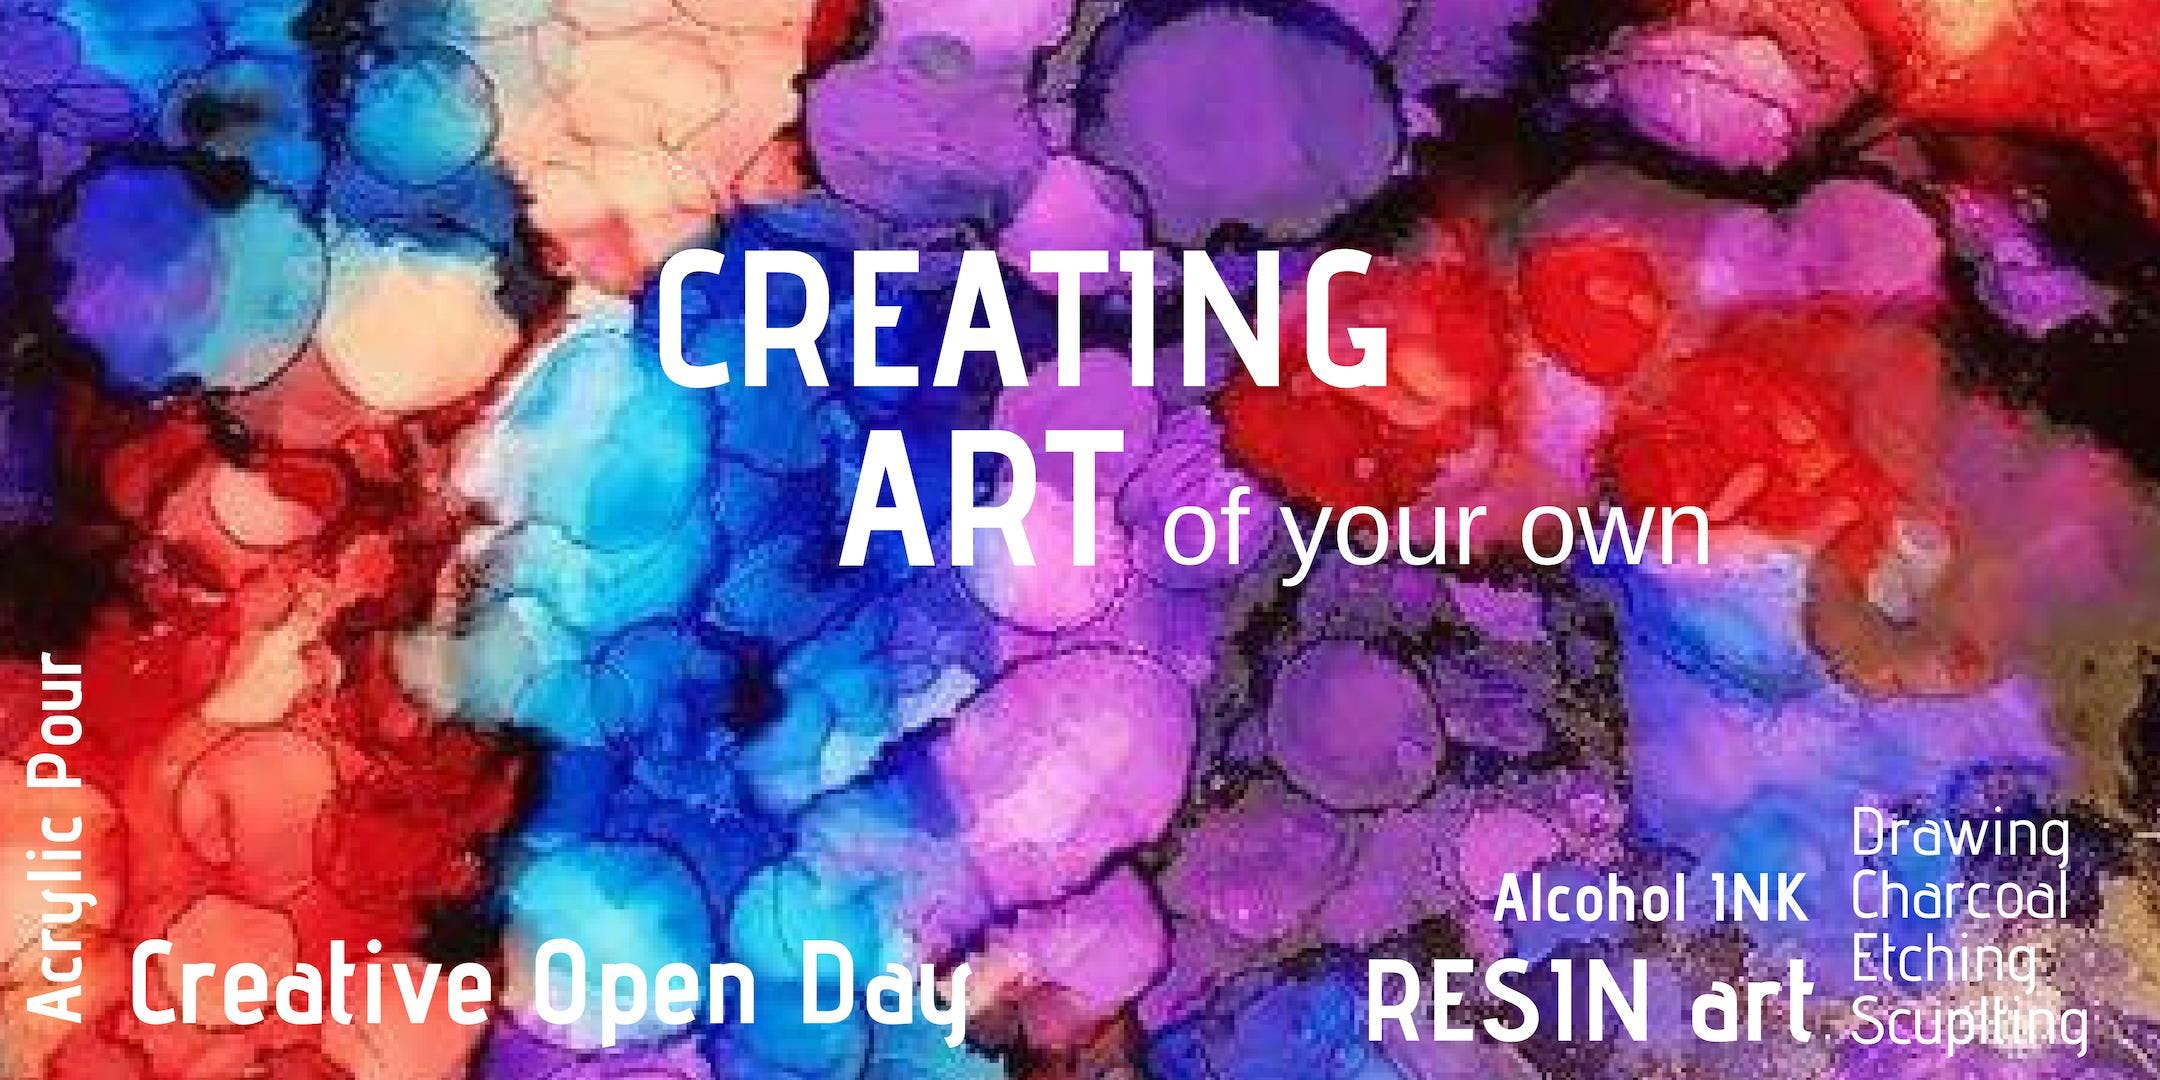 Creating Art - Sunday 17th Feb 3:00pm